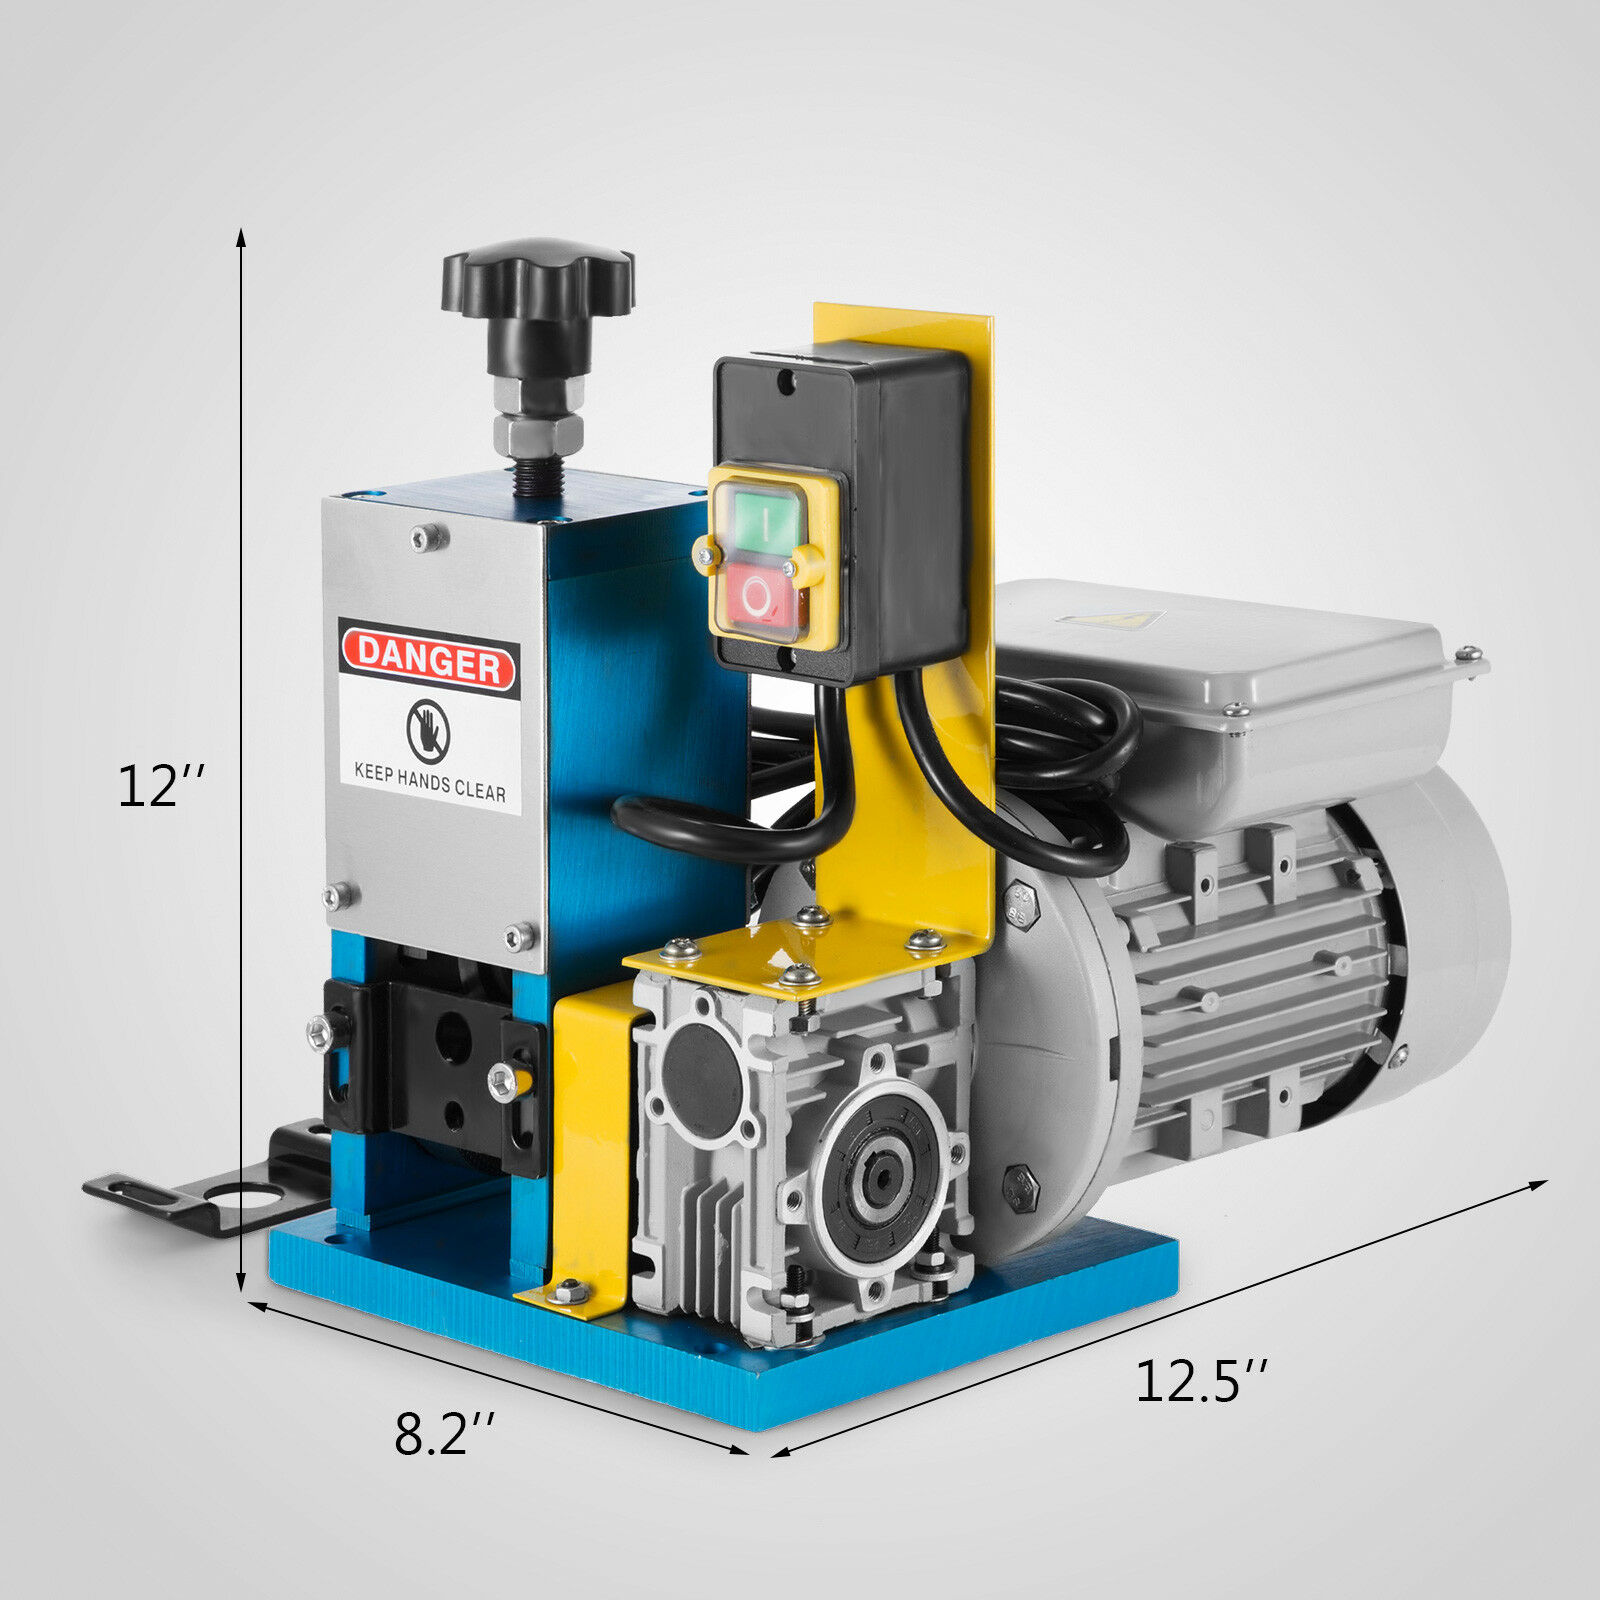 Free Shipping For EU Heavy Duty Gearbox Electric Cable Cutting Machine 1.5-25mm 220V 180W Nice